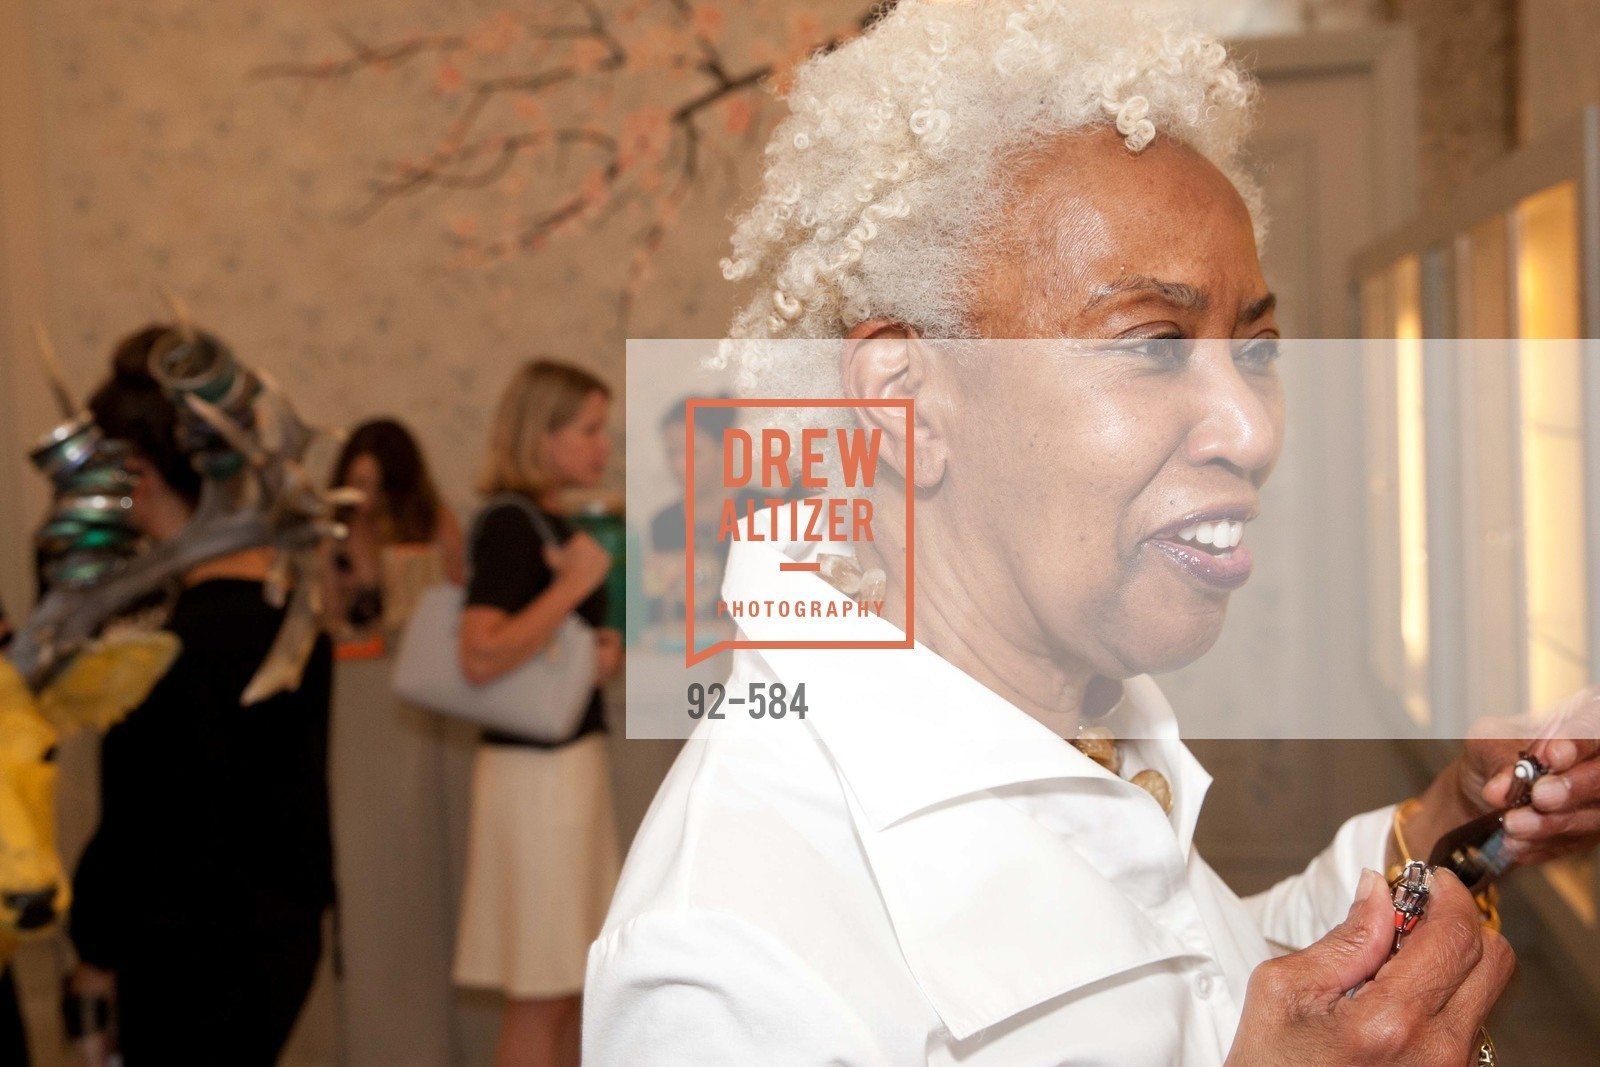 Elba McIntosh, Alexis Bittar Event; Support of the San Francisco Fall Antique Show Benefitting Enterprise for High School Students Francisco Fall Antique Show, benefiting Enterprise for High School Students, US, October 2nd, 2014,Drew Altizer, Drew Altizer Photography, full-service agency, private events, San Francisco photographer, photographer california